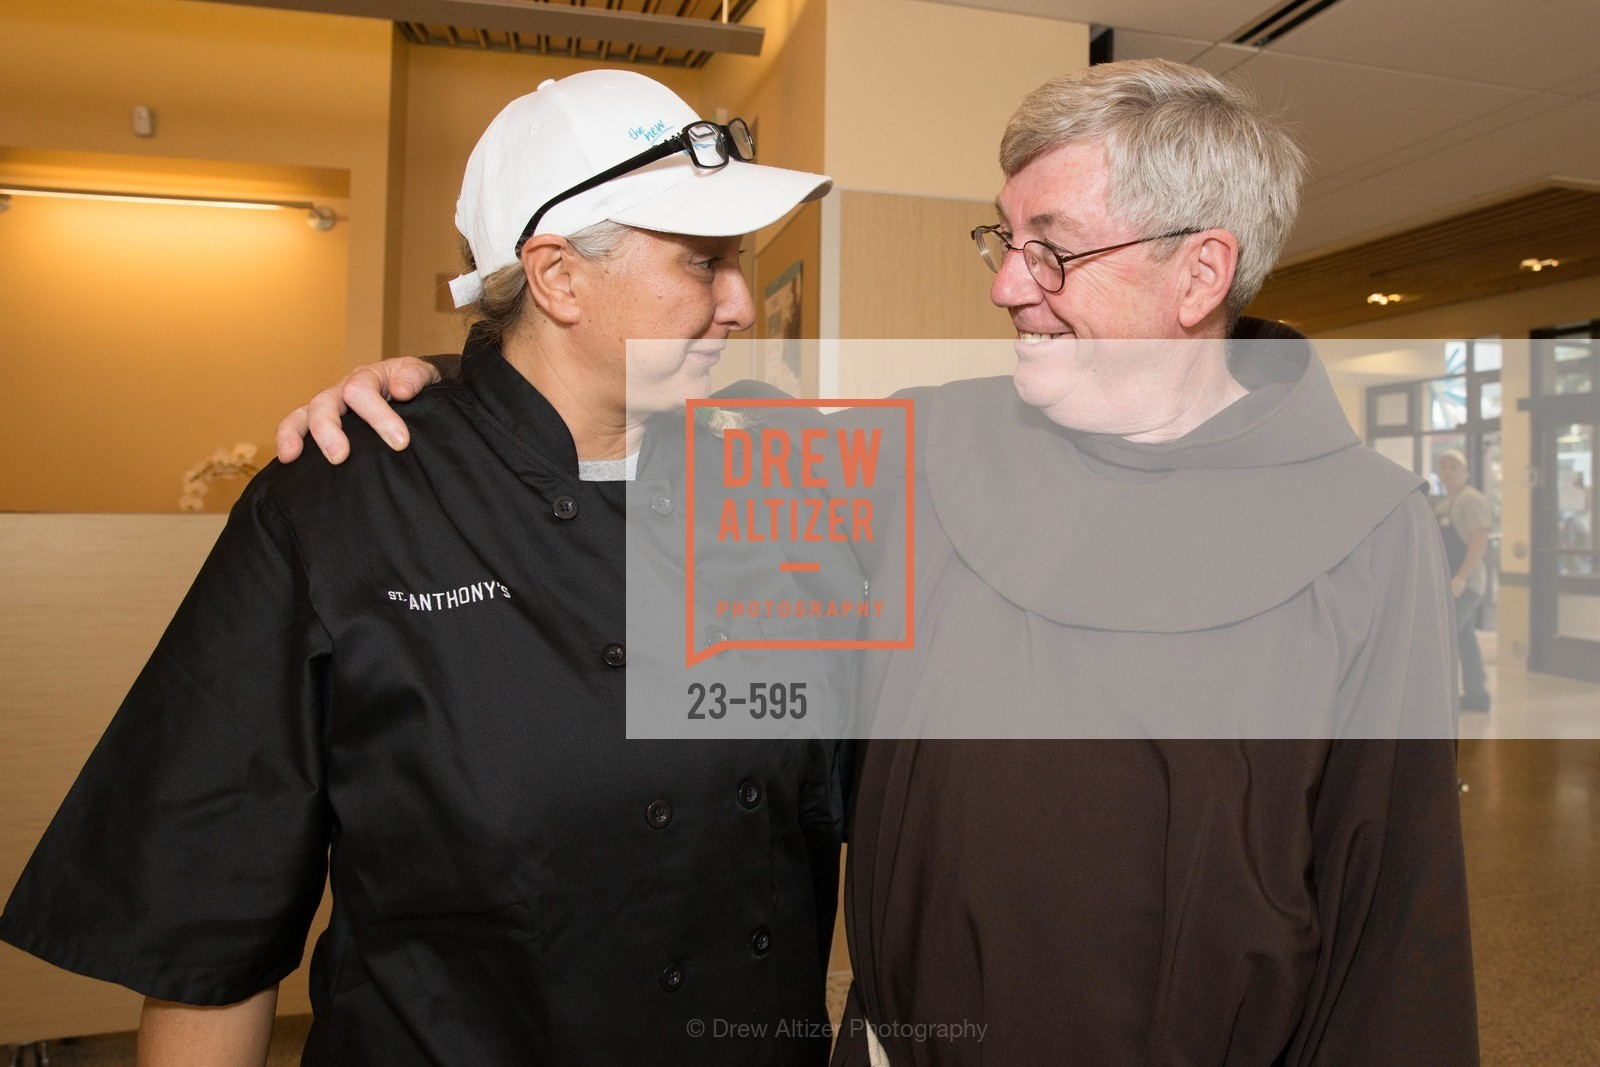 Char Marsden, Father Tom West, ST. ANTHONY'S Dining Room Ribbon Cutting Ceremony, US, October 4th, 2014,Drew Altizer, Drew Altizer Photography, full-service agency, private events, San Francisco photographer, photographer california